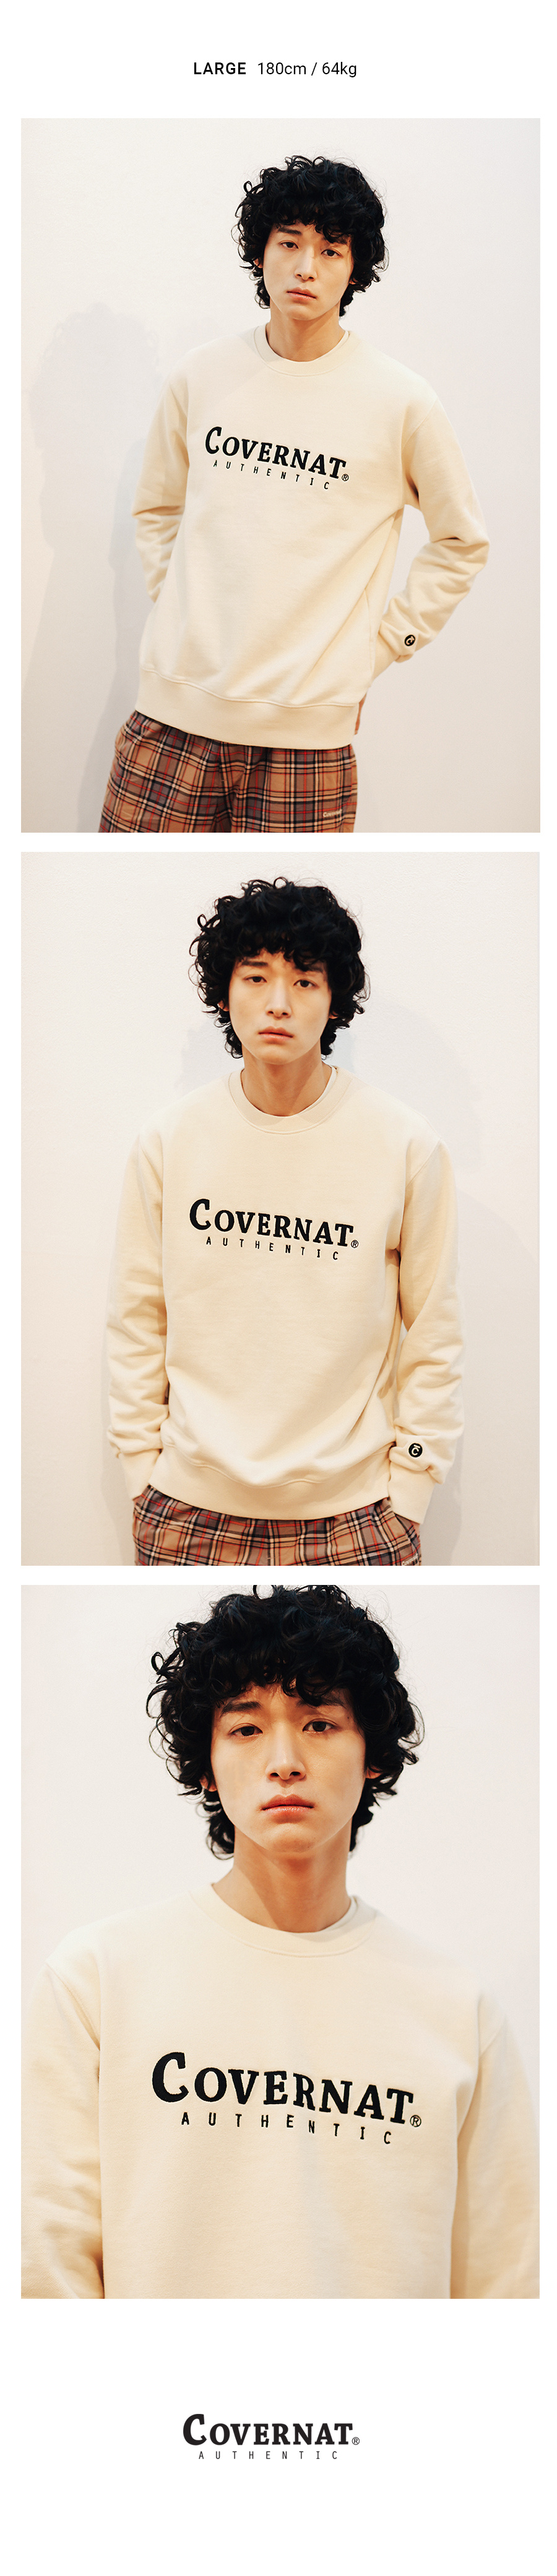 커버낫(COVERNAT) AUTHENTIC LOGO CREWNECK NAVY